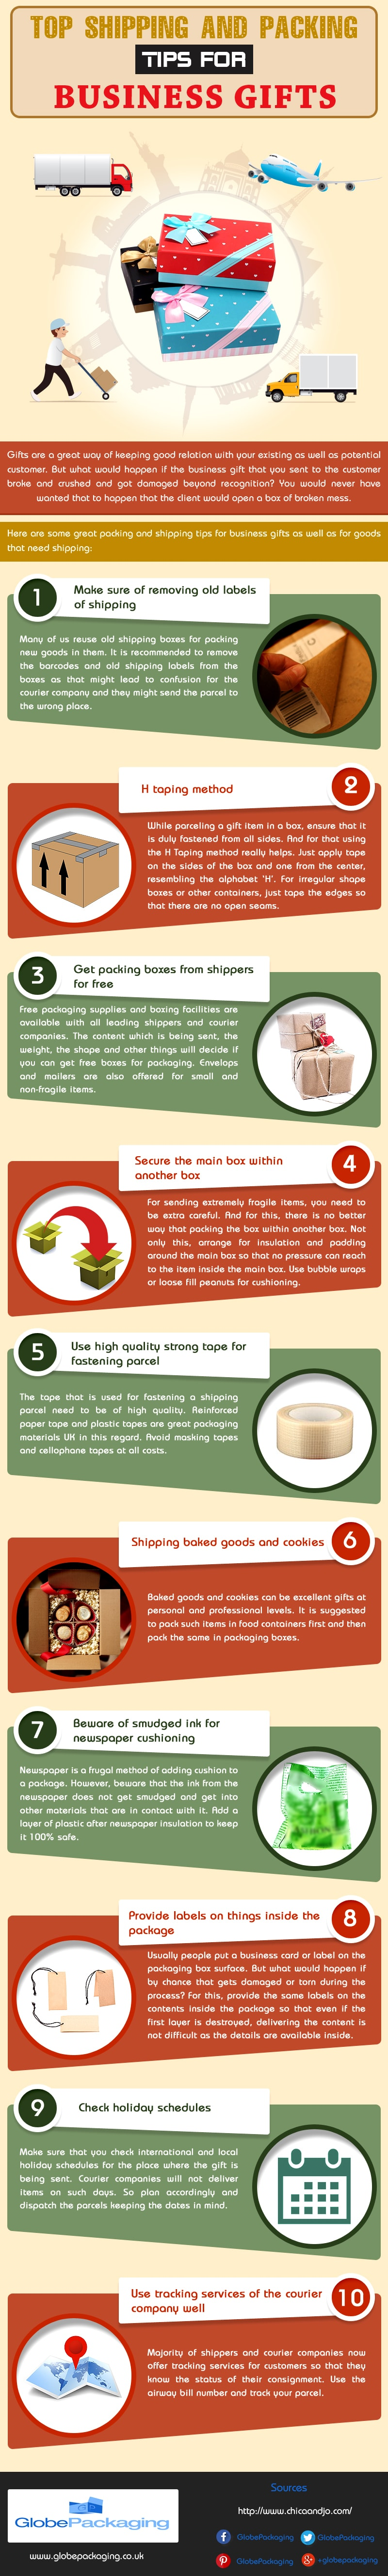 Shipping and Packing Tips for Business Gifts [Infographic]